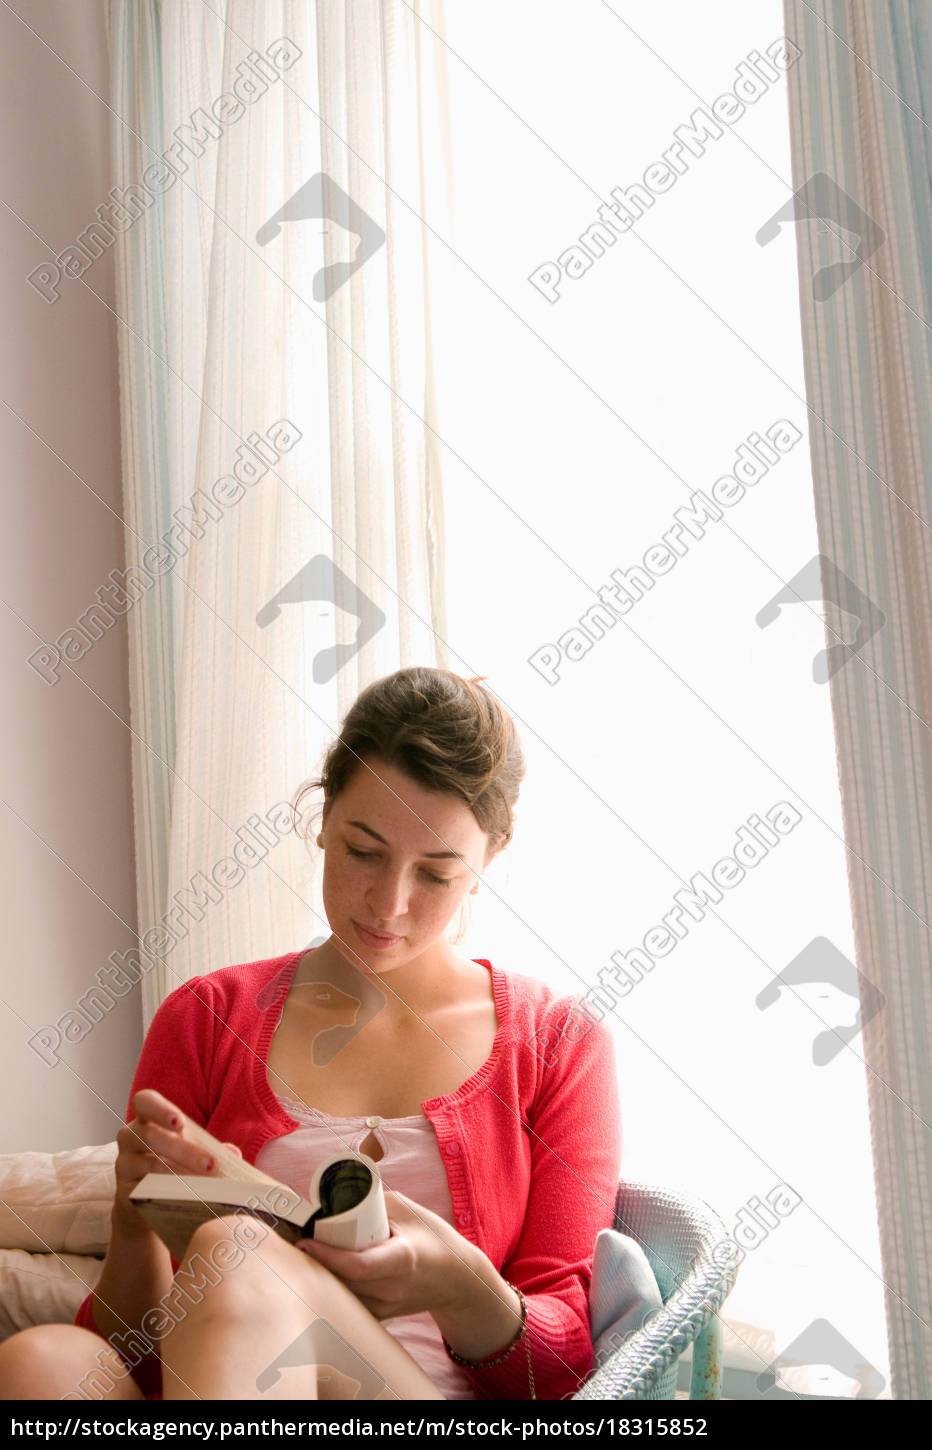 young, women, reads, book - 18315852